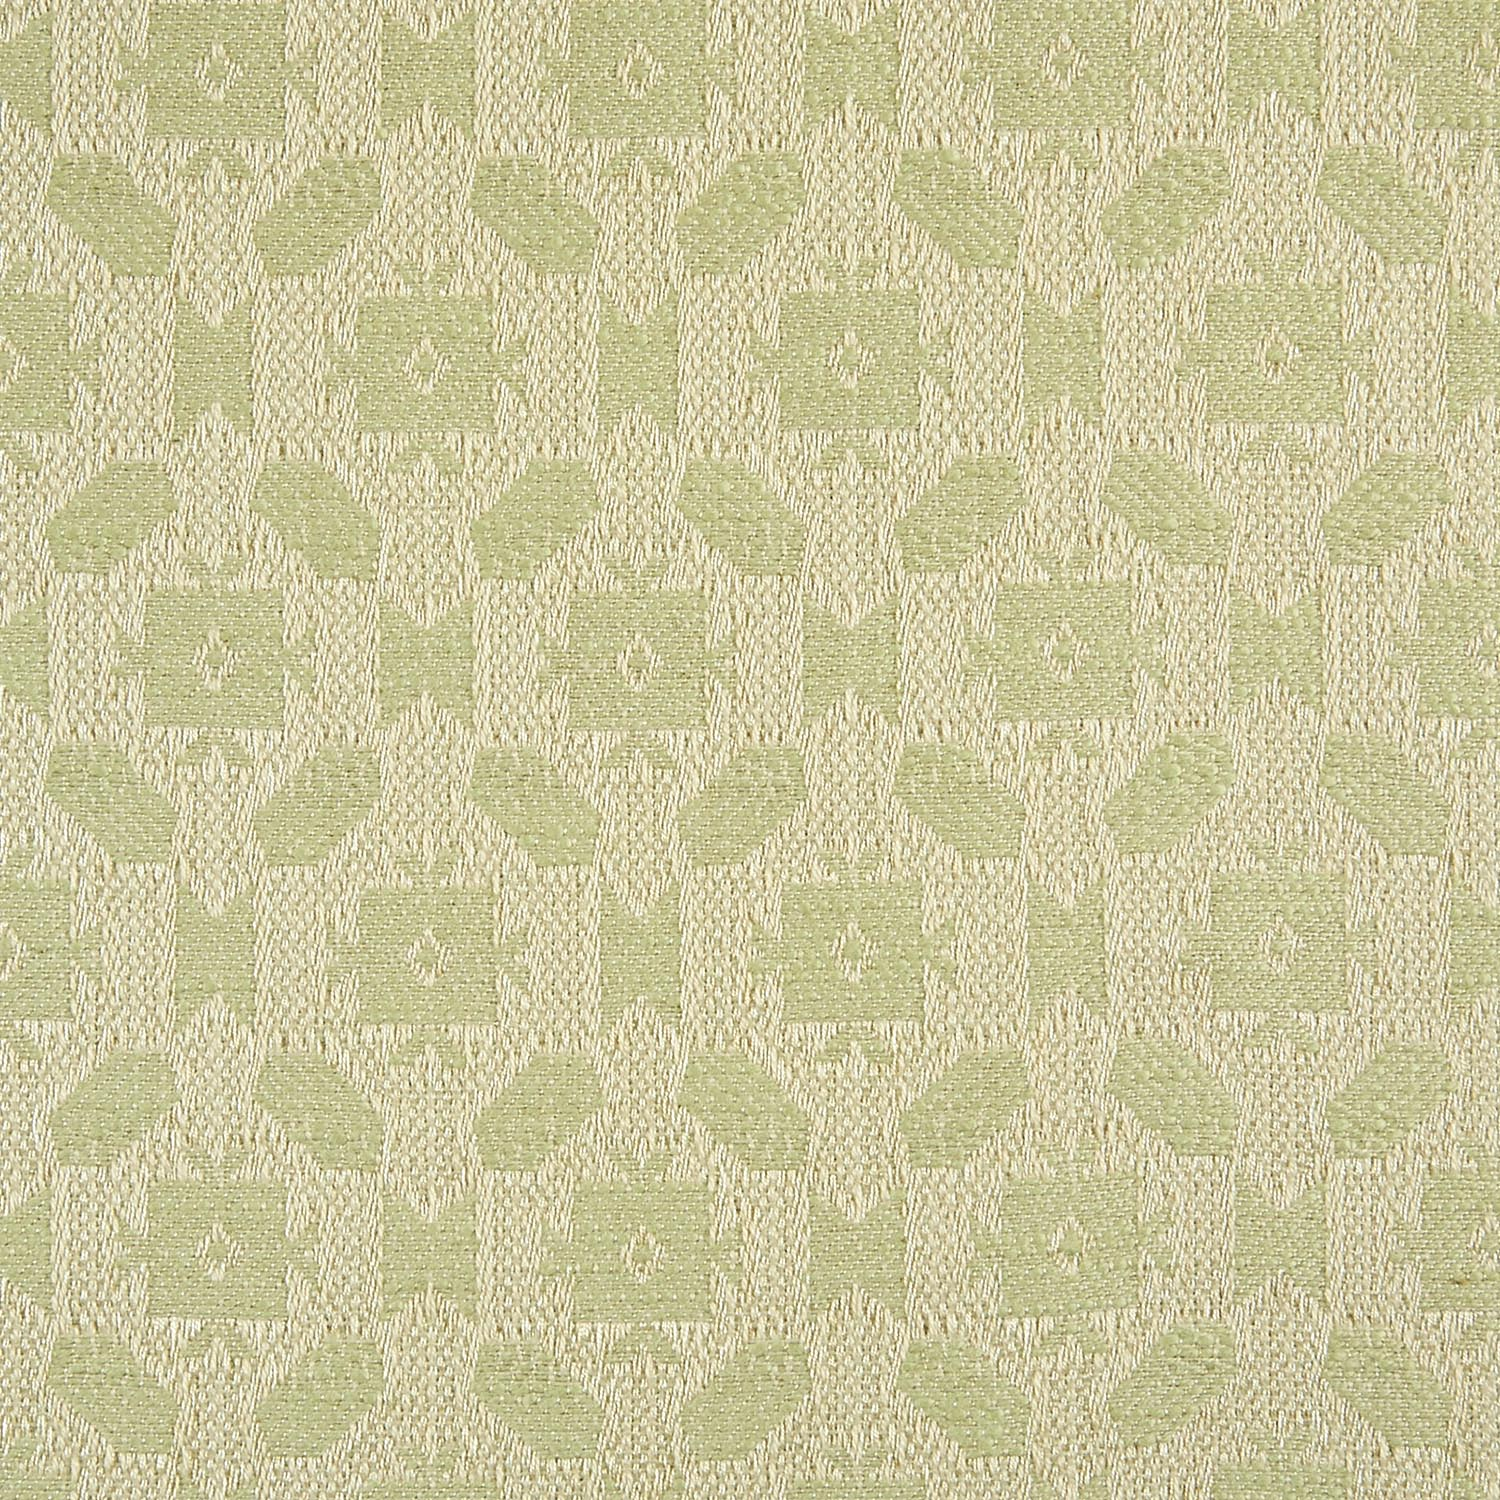 <p><strong>LOWELL</strong>celadon 1700-01<a href=/the-langham-collection/lowell-celadon-1700-01>More →</a></p>